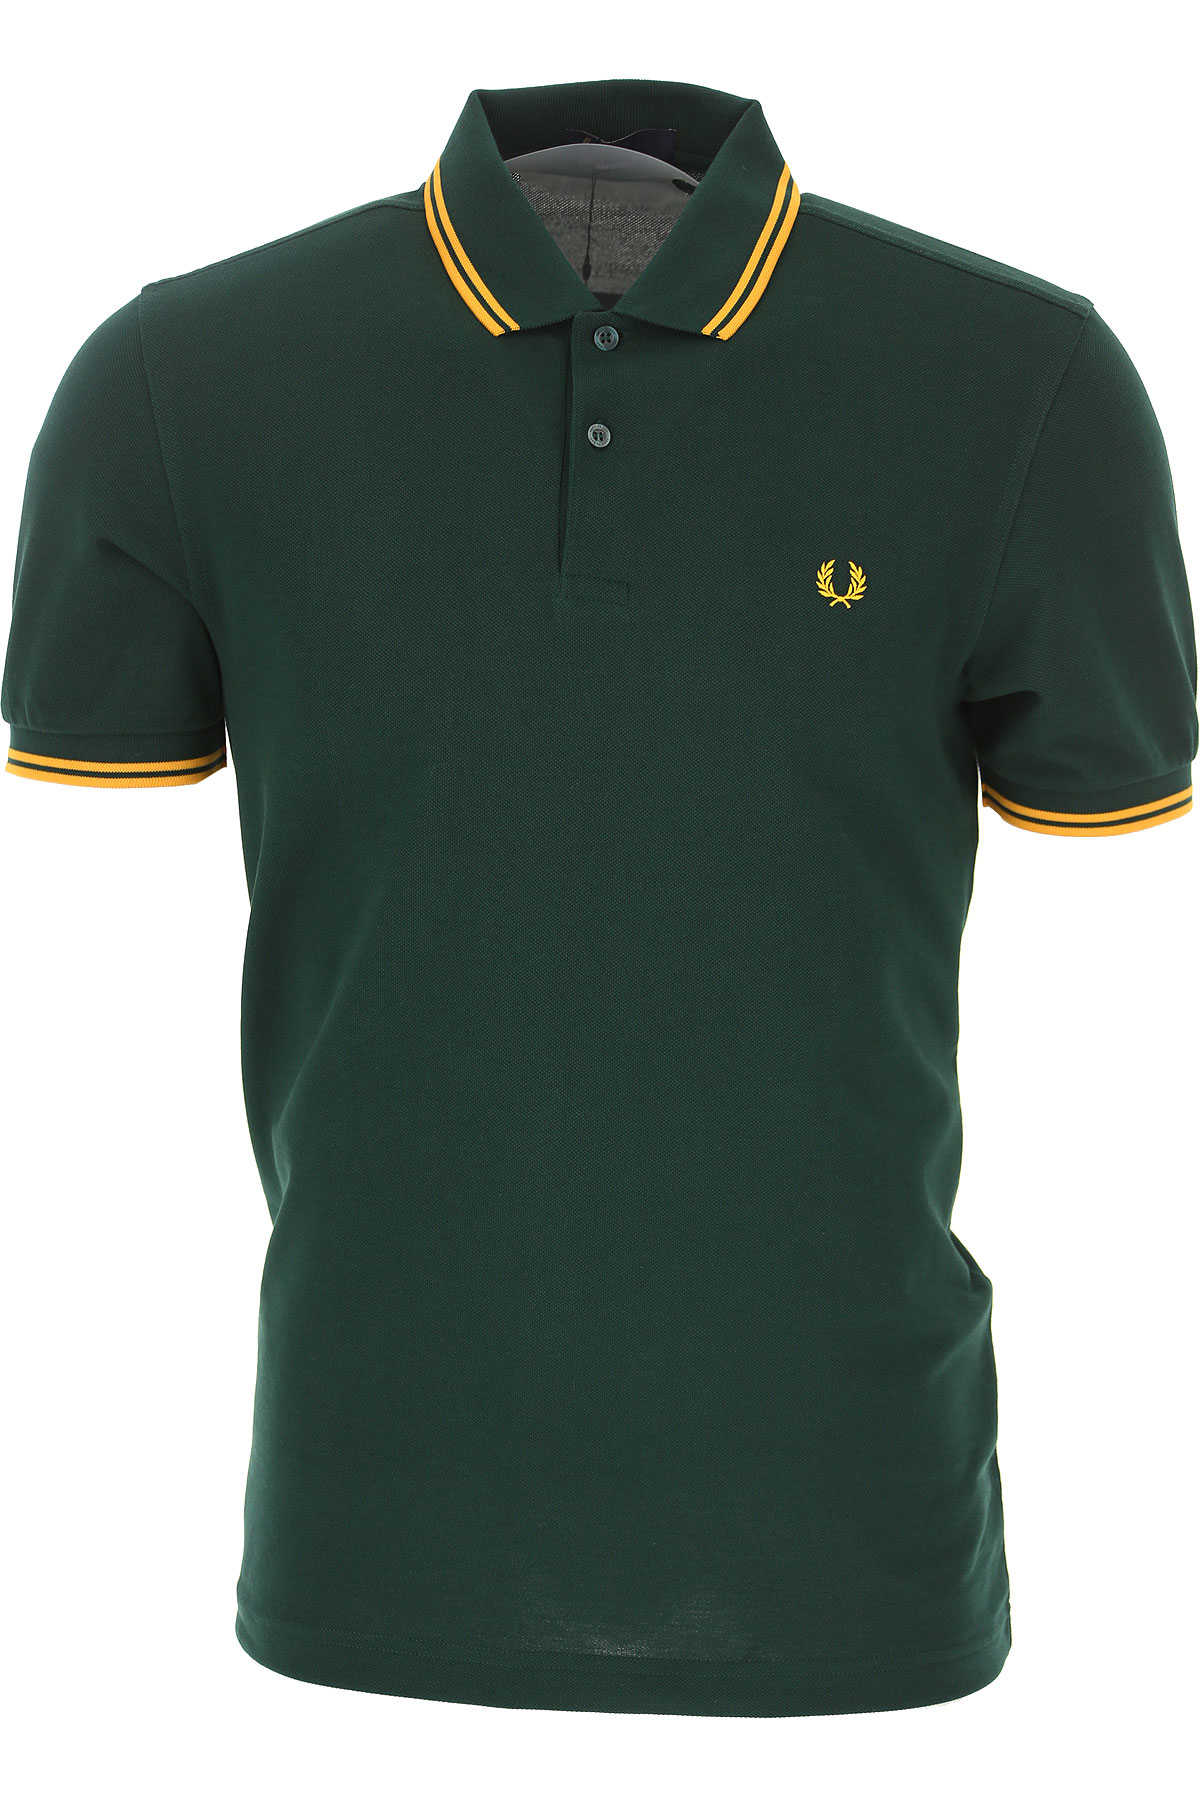 Fred Perry Polo Shirt for Men evergreen USA - GOOFASH